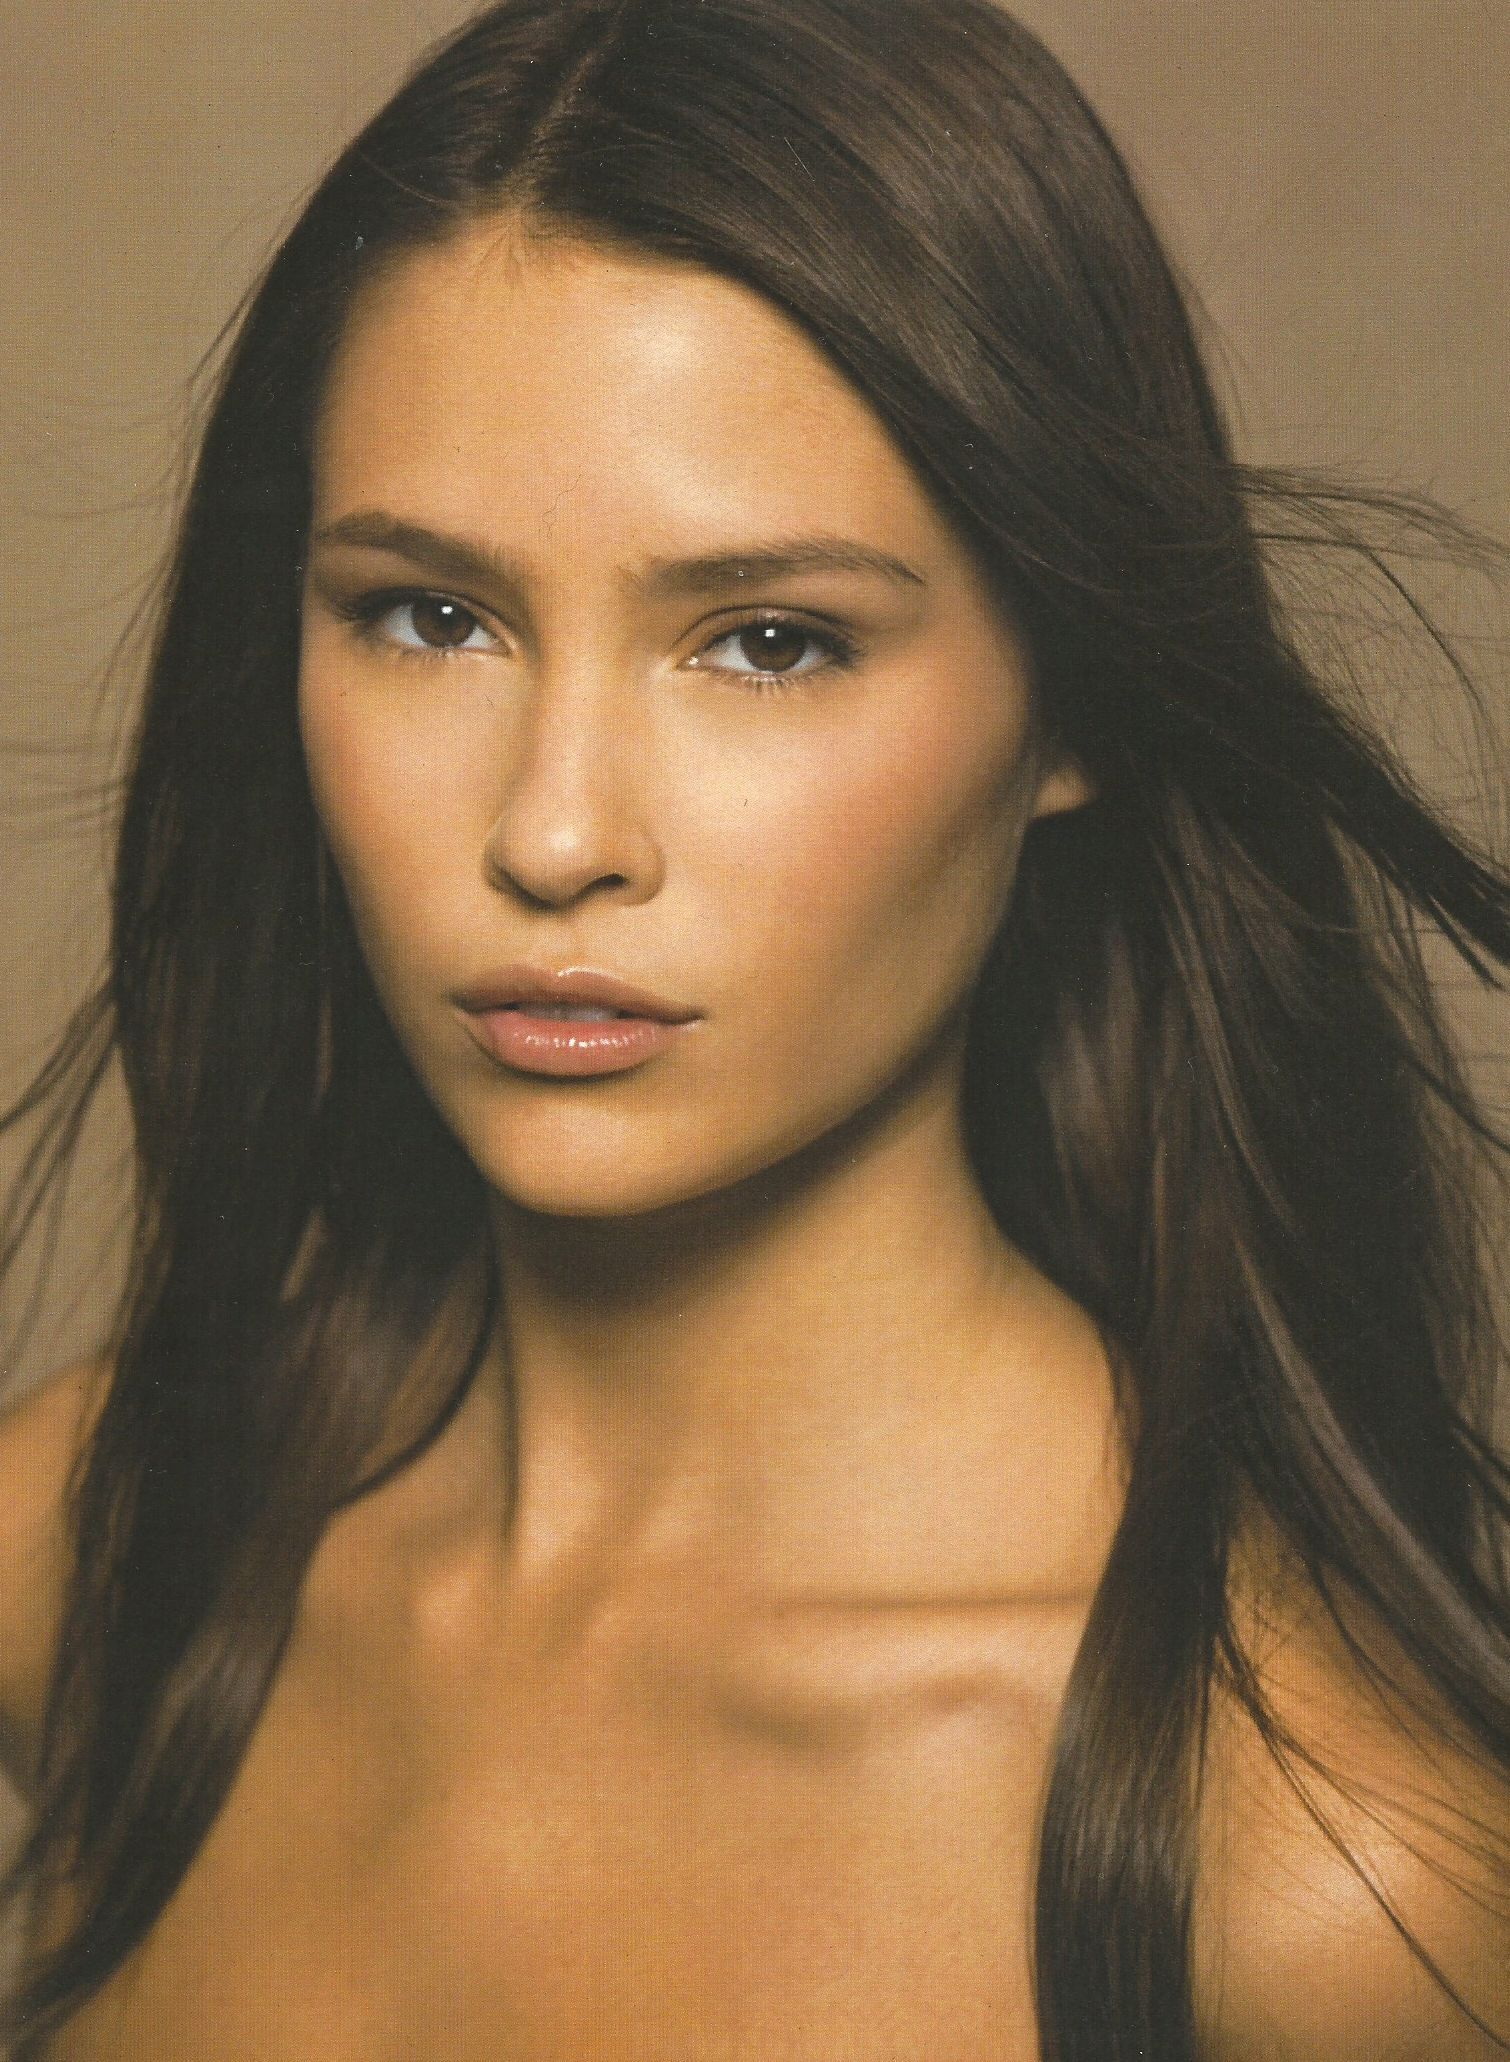 Post people with extremely high cheekbones. : Shitty Advice  Native American Indian Cheekbones